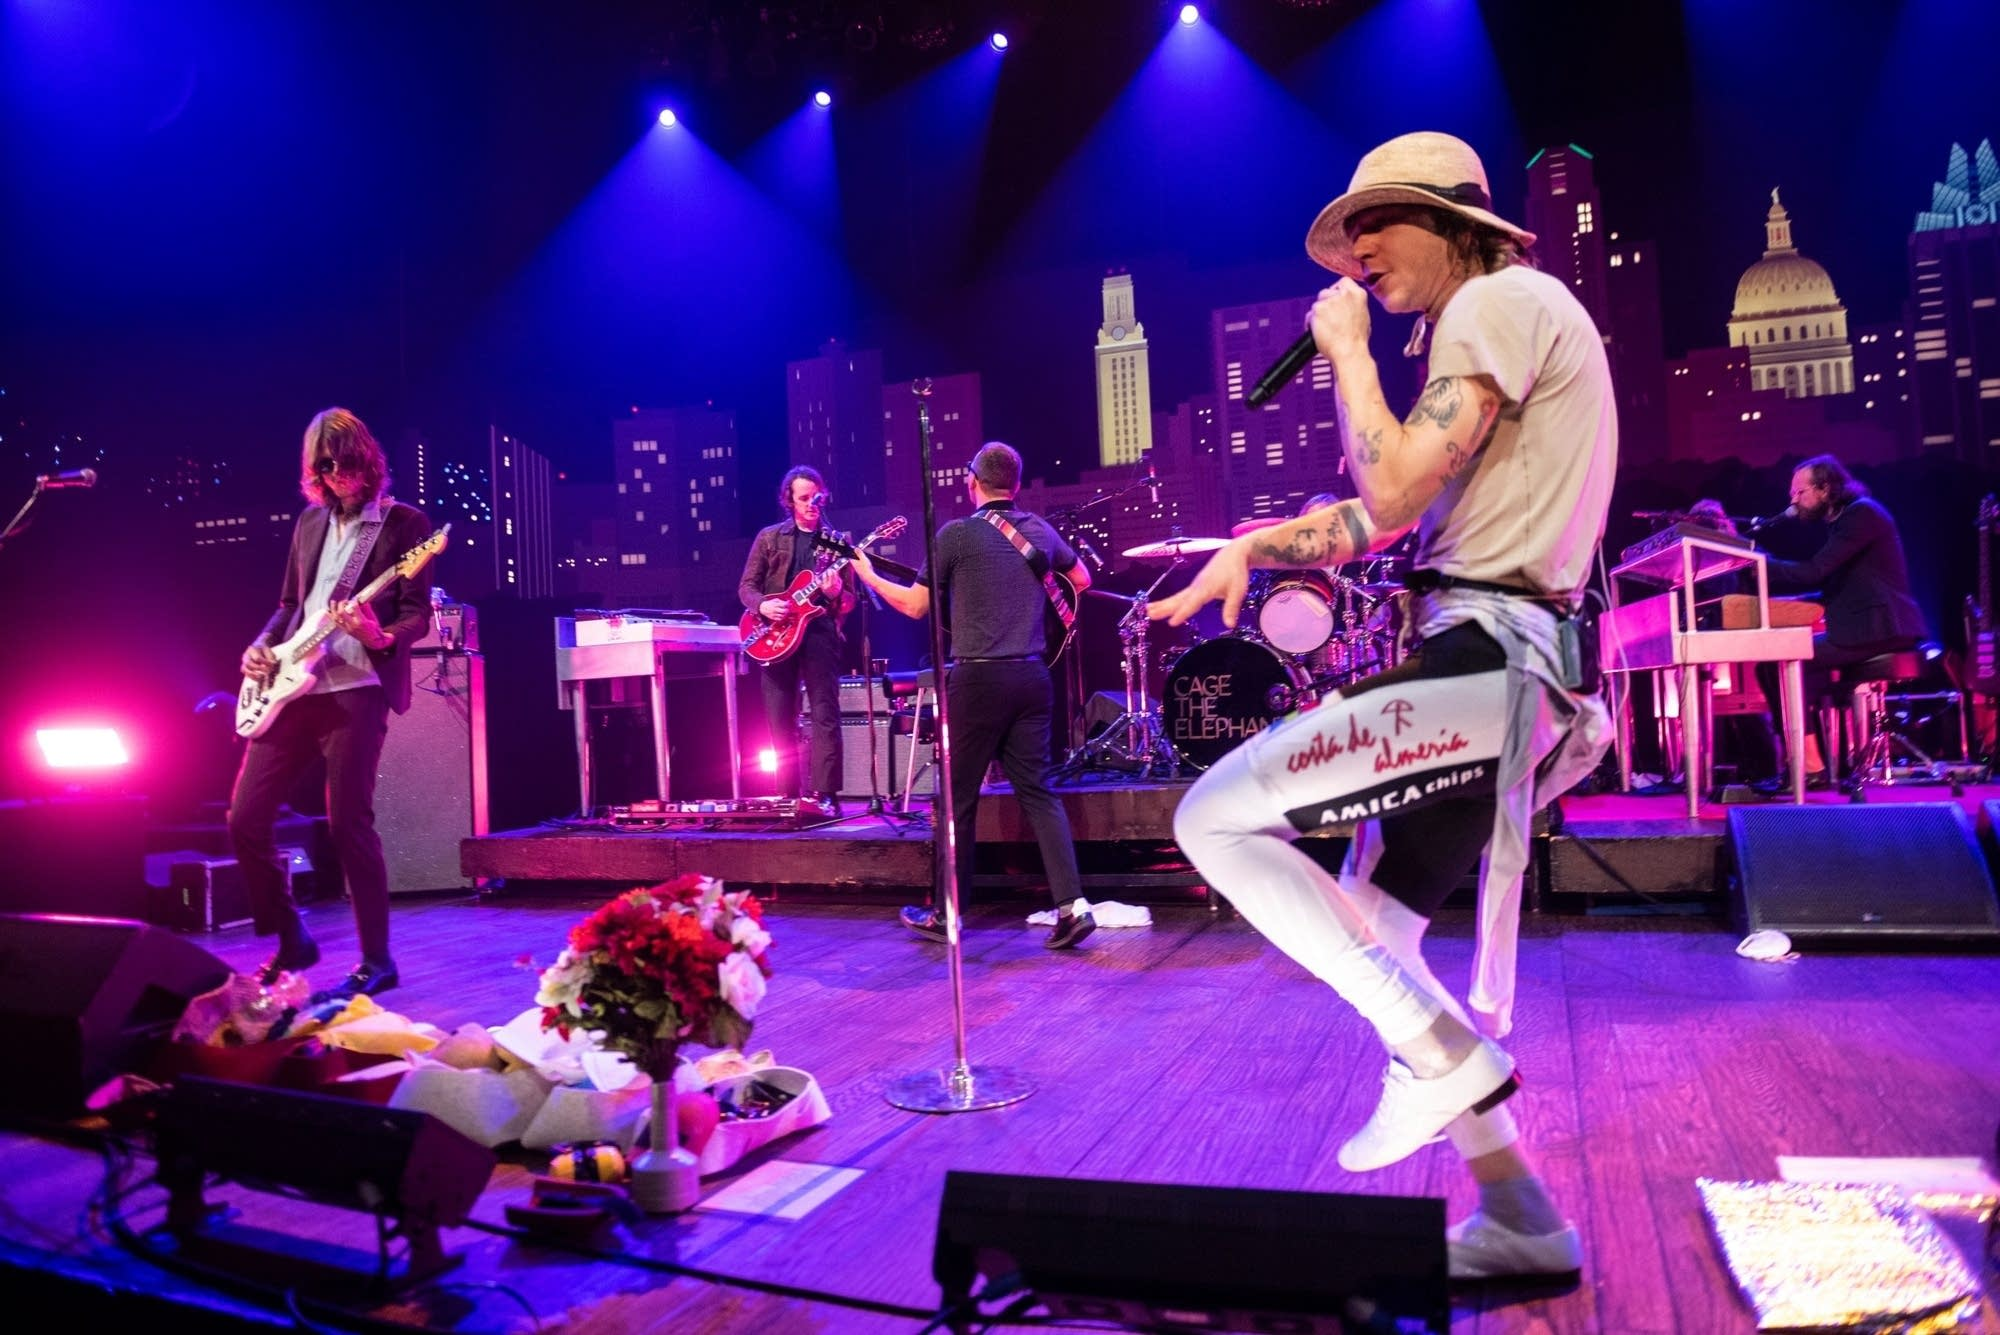 Cage The Elephant on 'Austin City Limits' on PBS